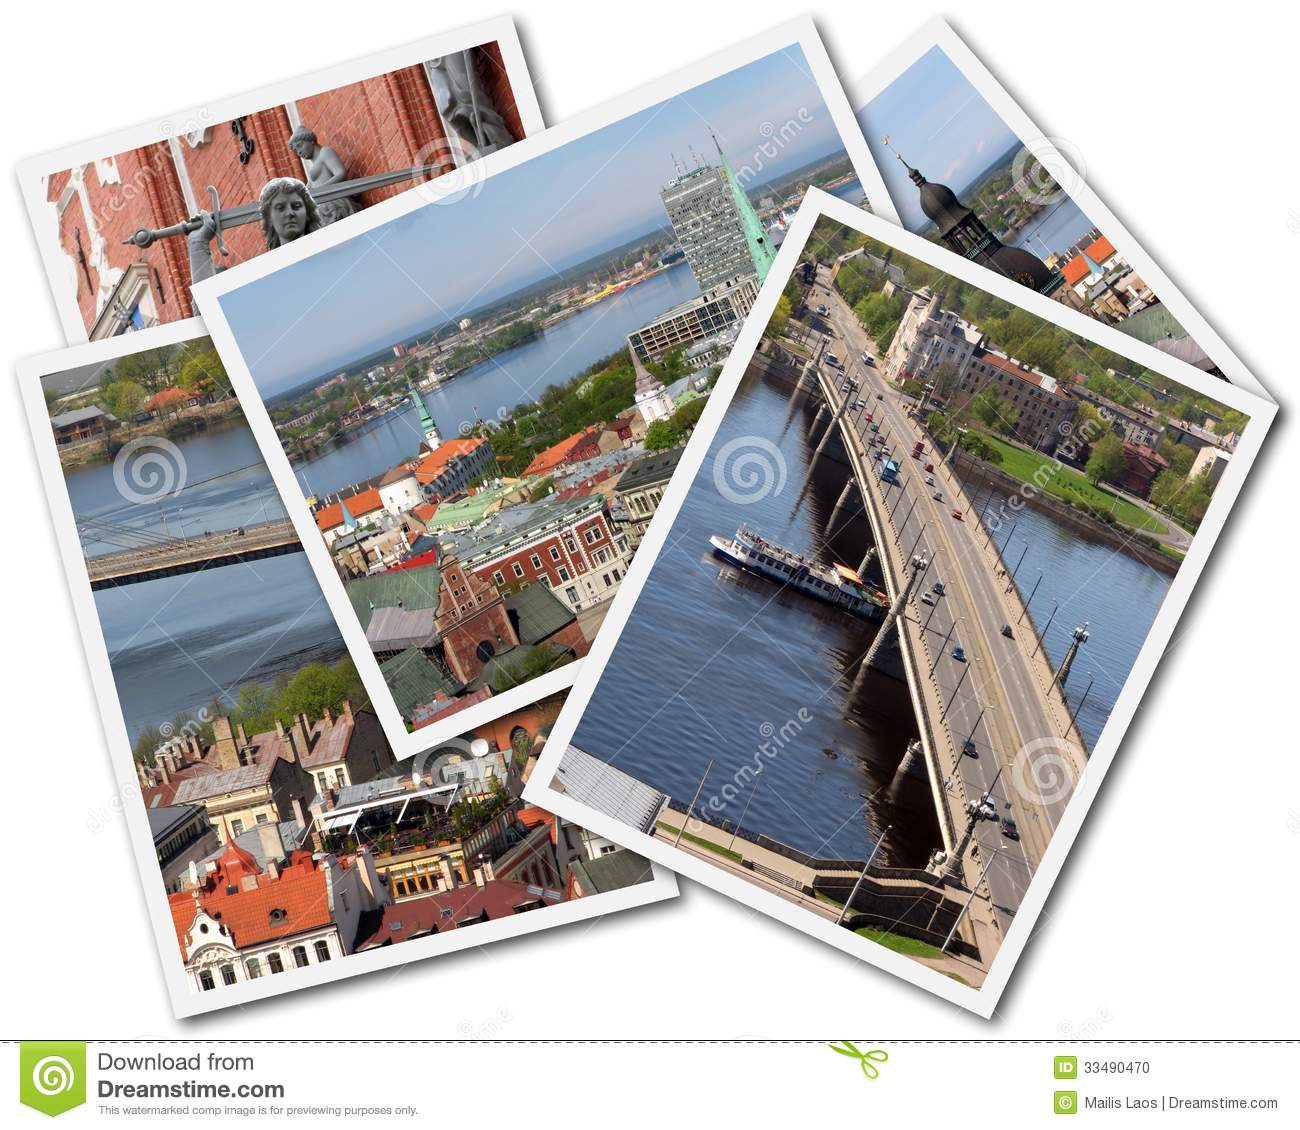 Download Riga Collage stock photo. Image of photography, buildings - 33490470